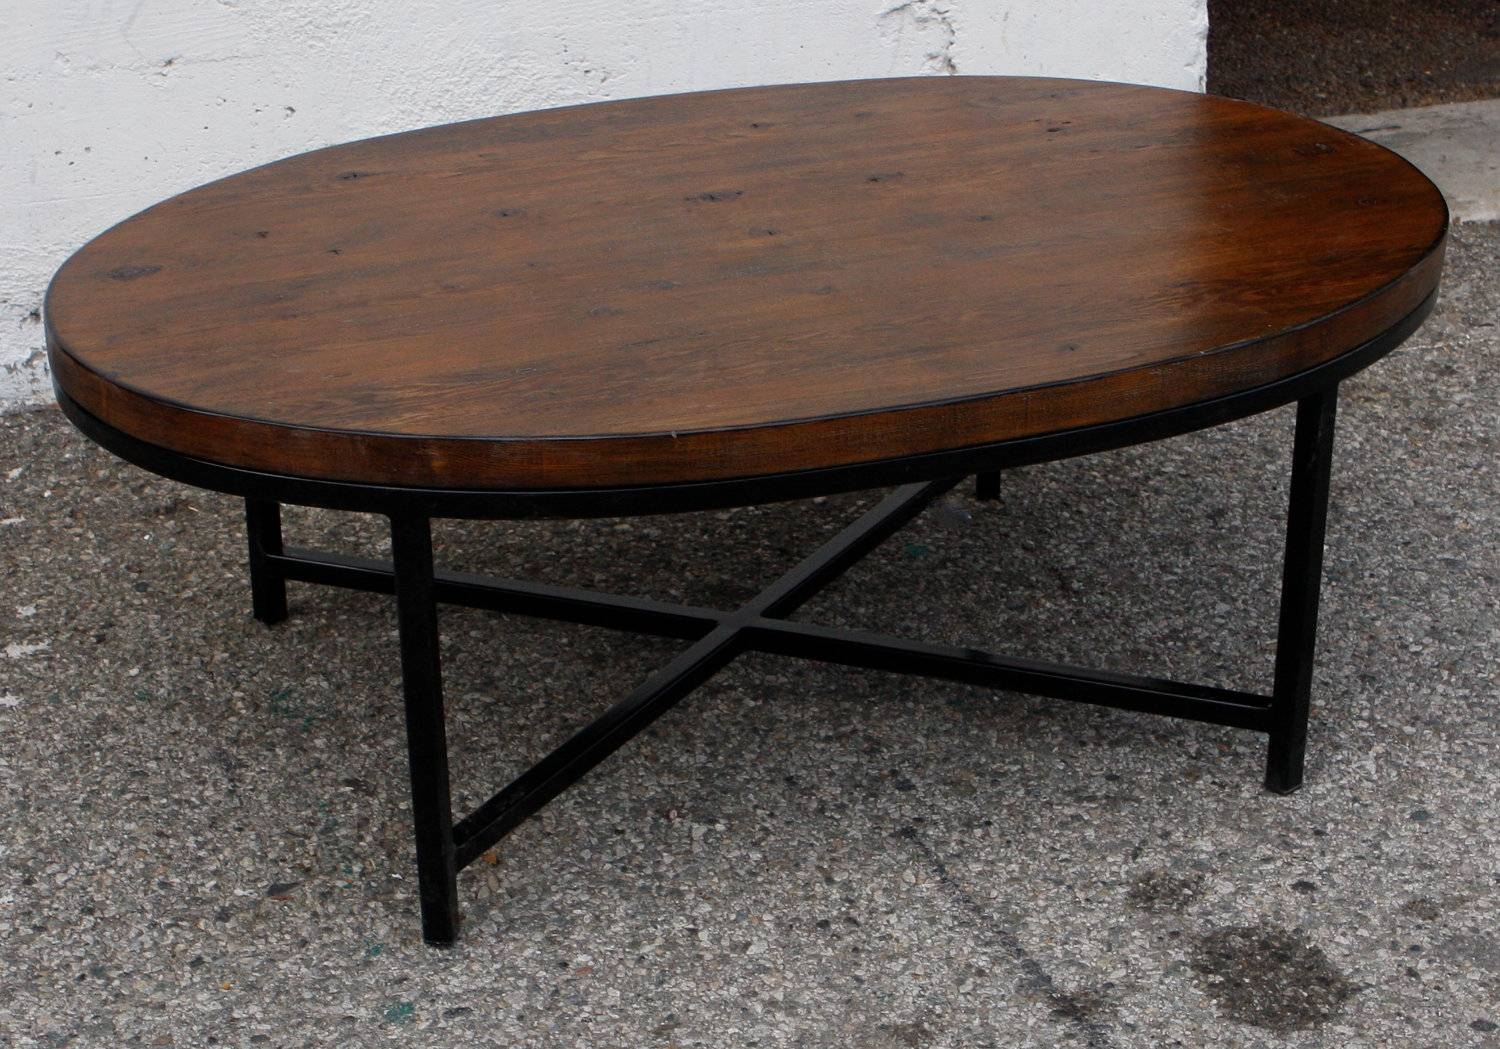 Classic Oval Coffee Table Furniture Hardwood Small Glass Pottery Regarding Coffee Tables With Oval Shape (View 6 of 30)